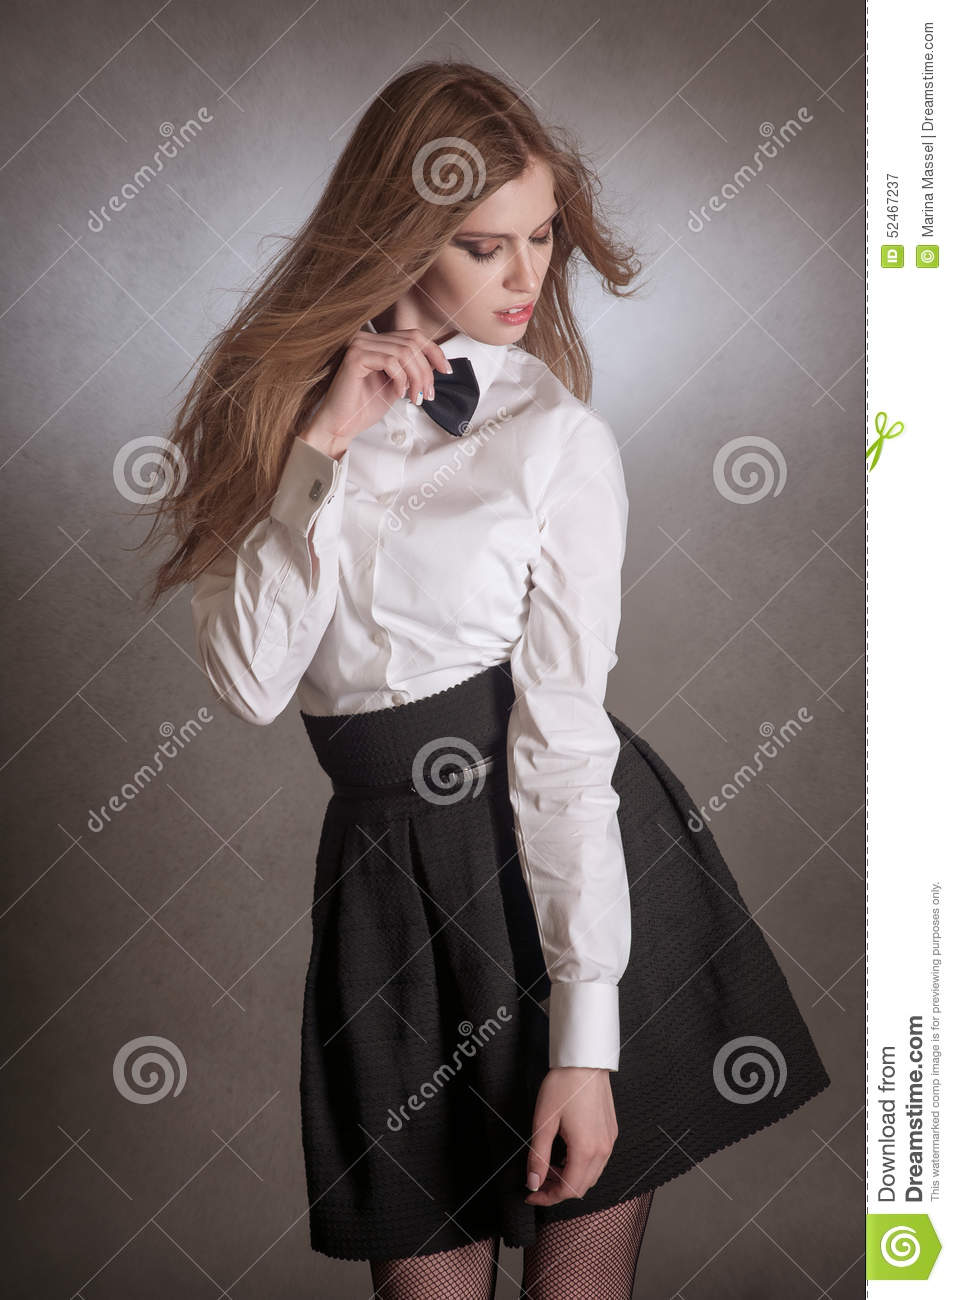 Blondie Woman In White Shirt And Black Bow-tie Stock Photo - Image ...